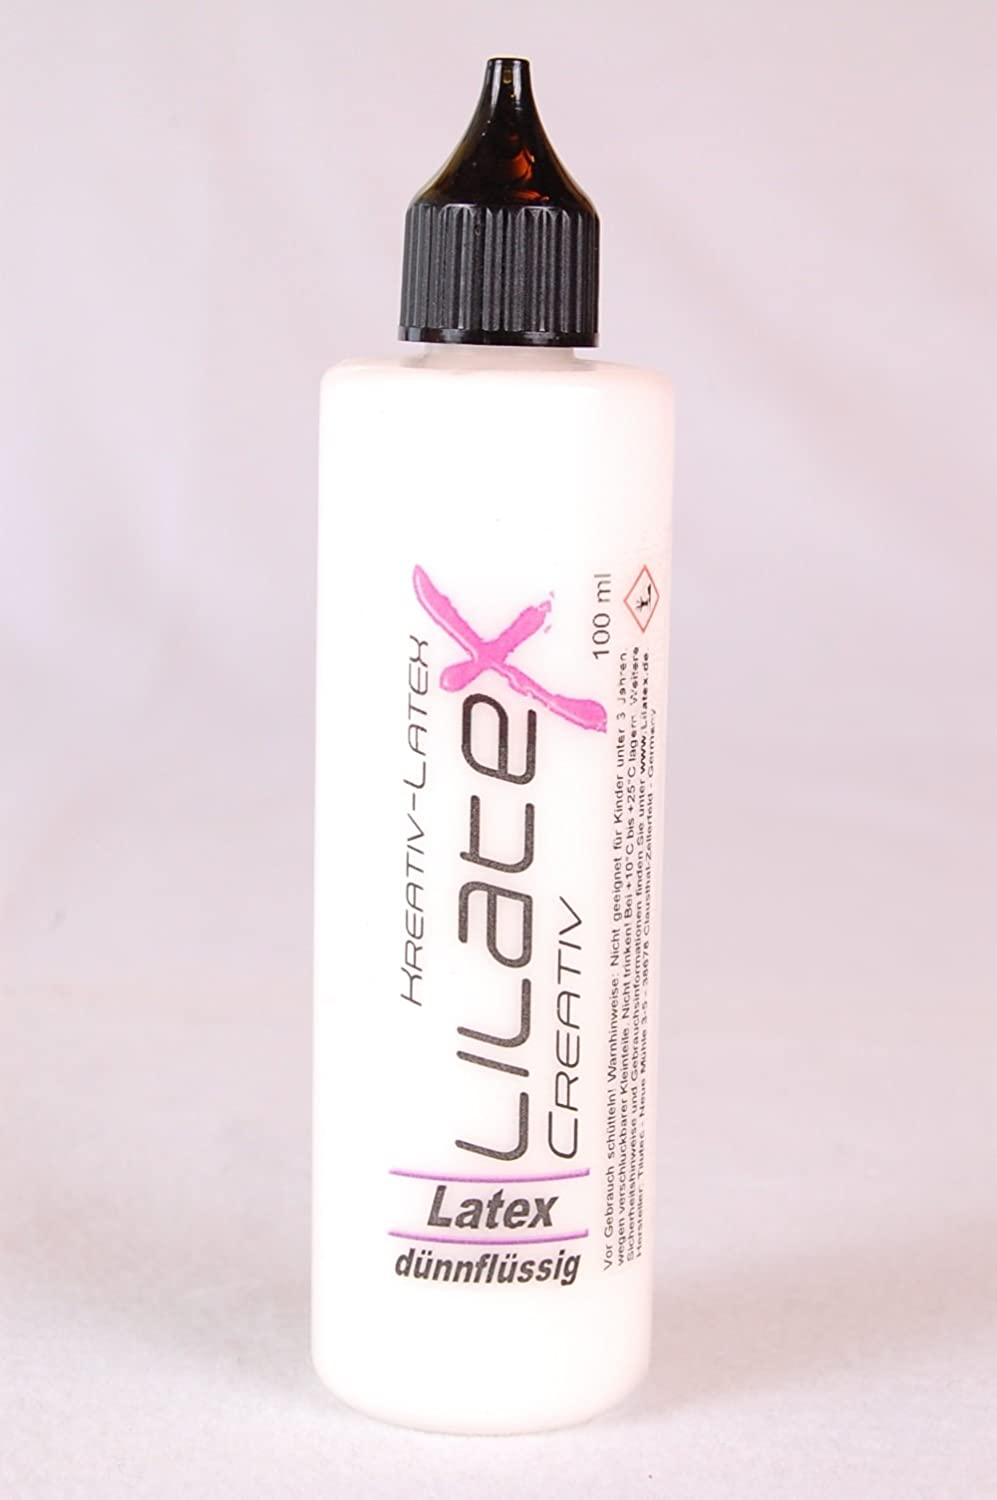 Lilatex Flü ssiglatex 100ml Tilutec